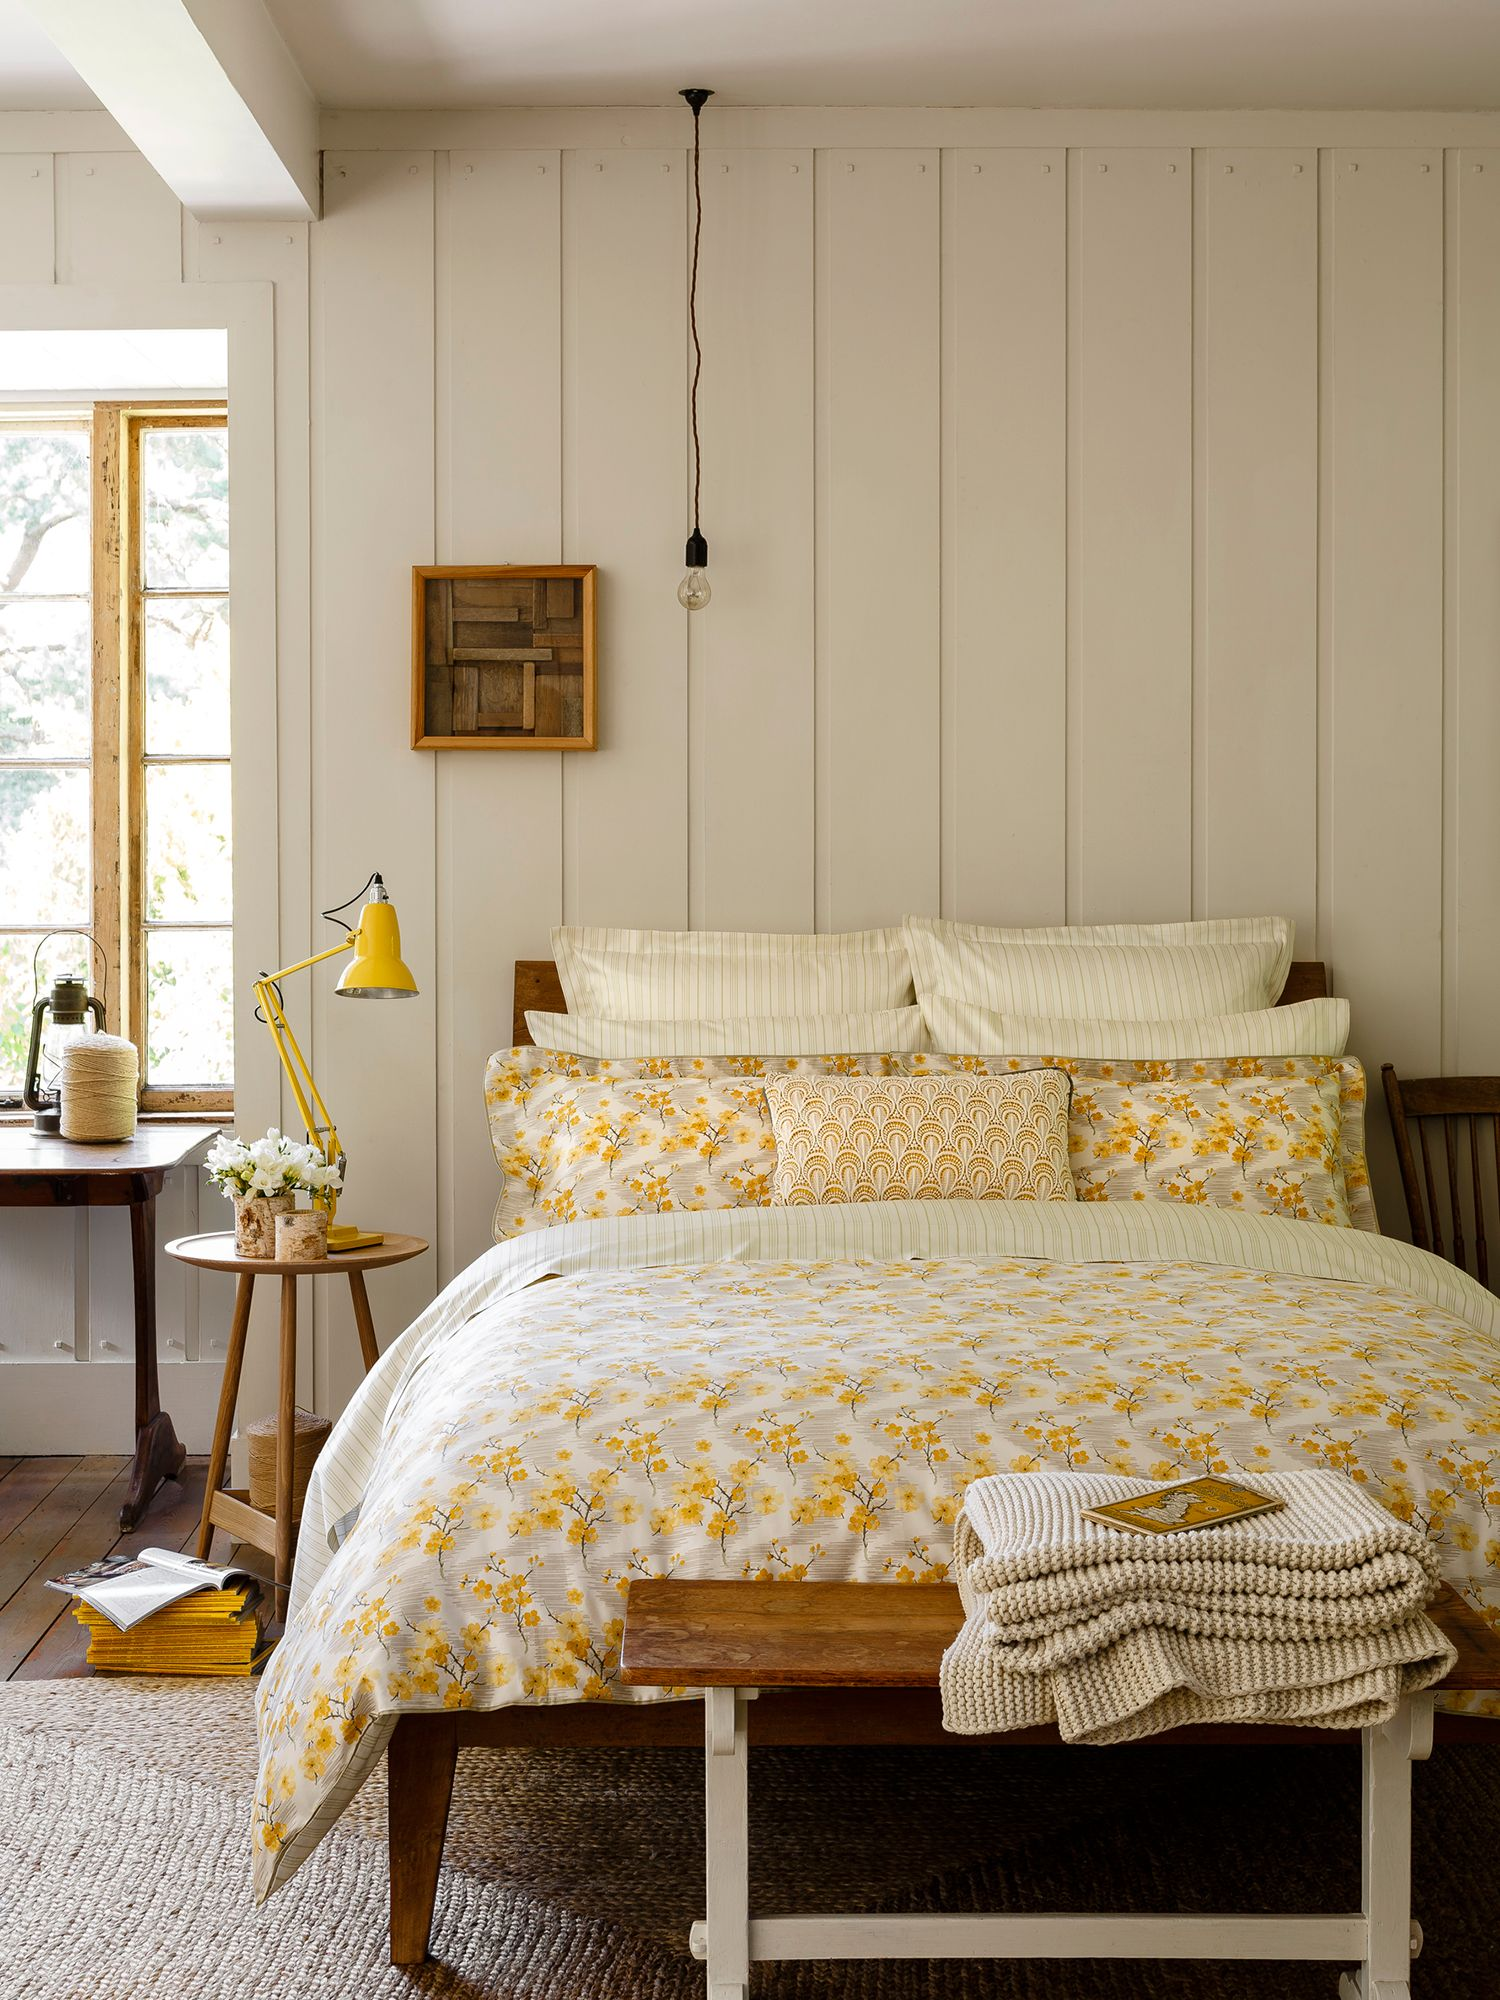 Okame bed linen in saffron